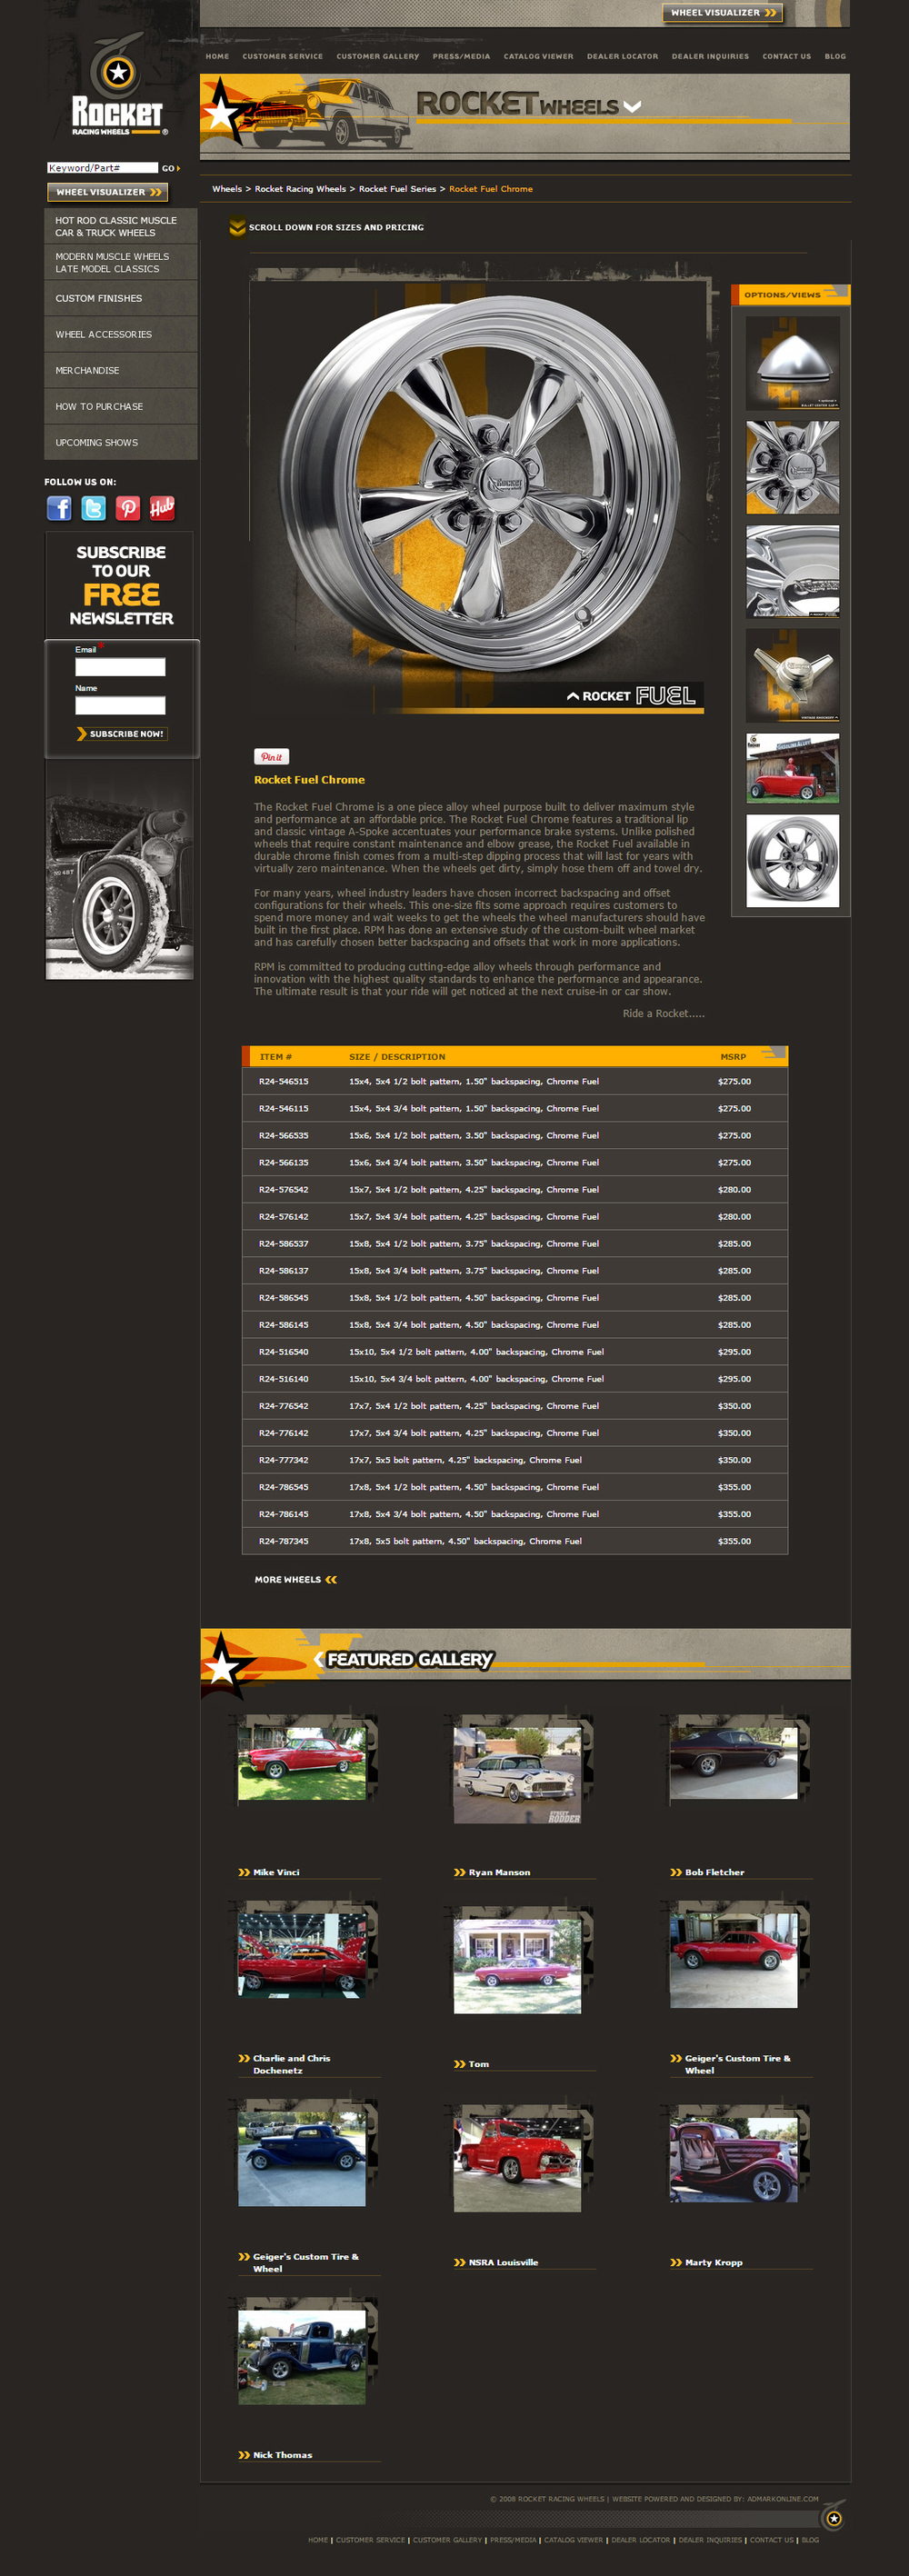 Rocket Racing Wheels Website